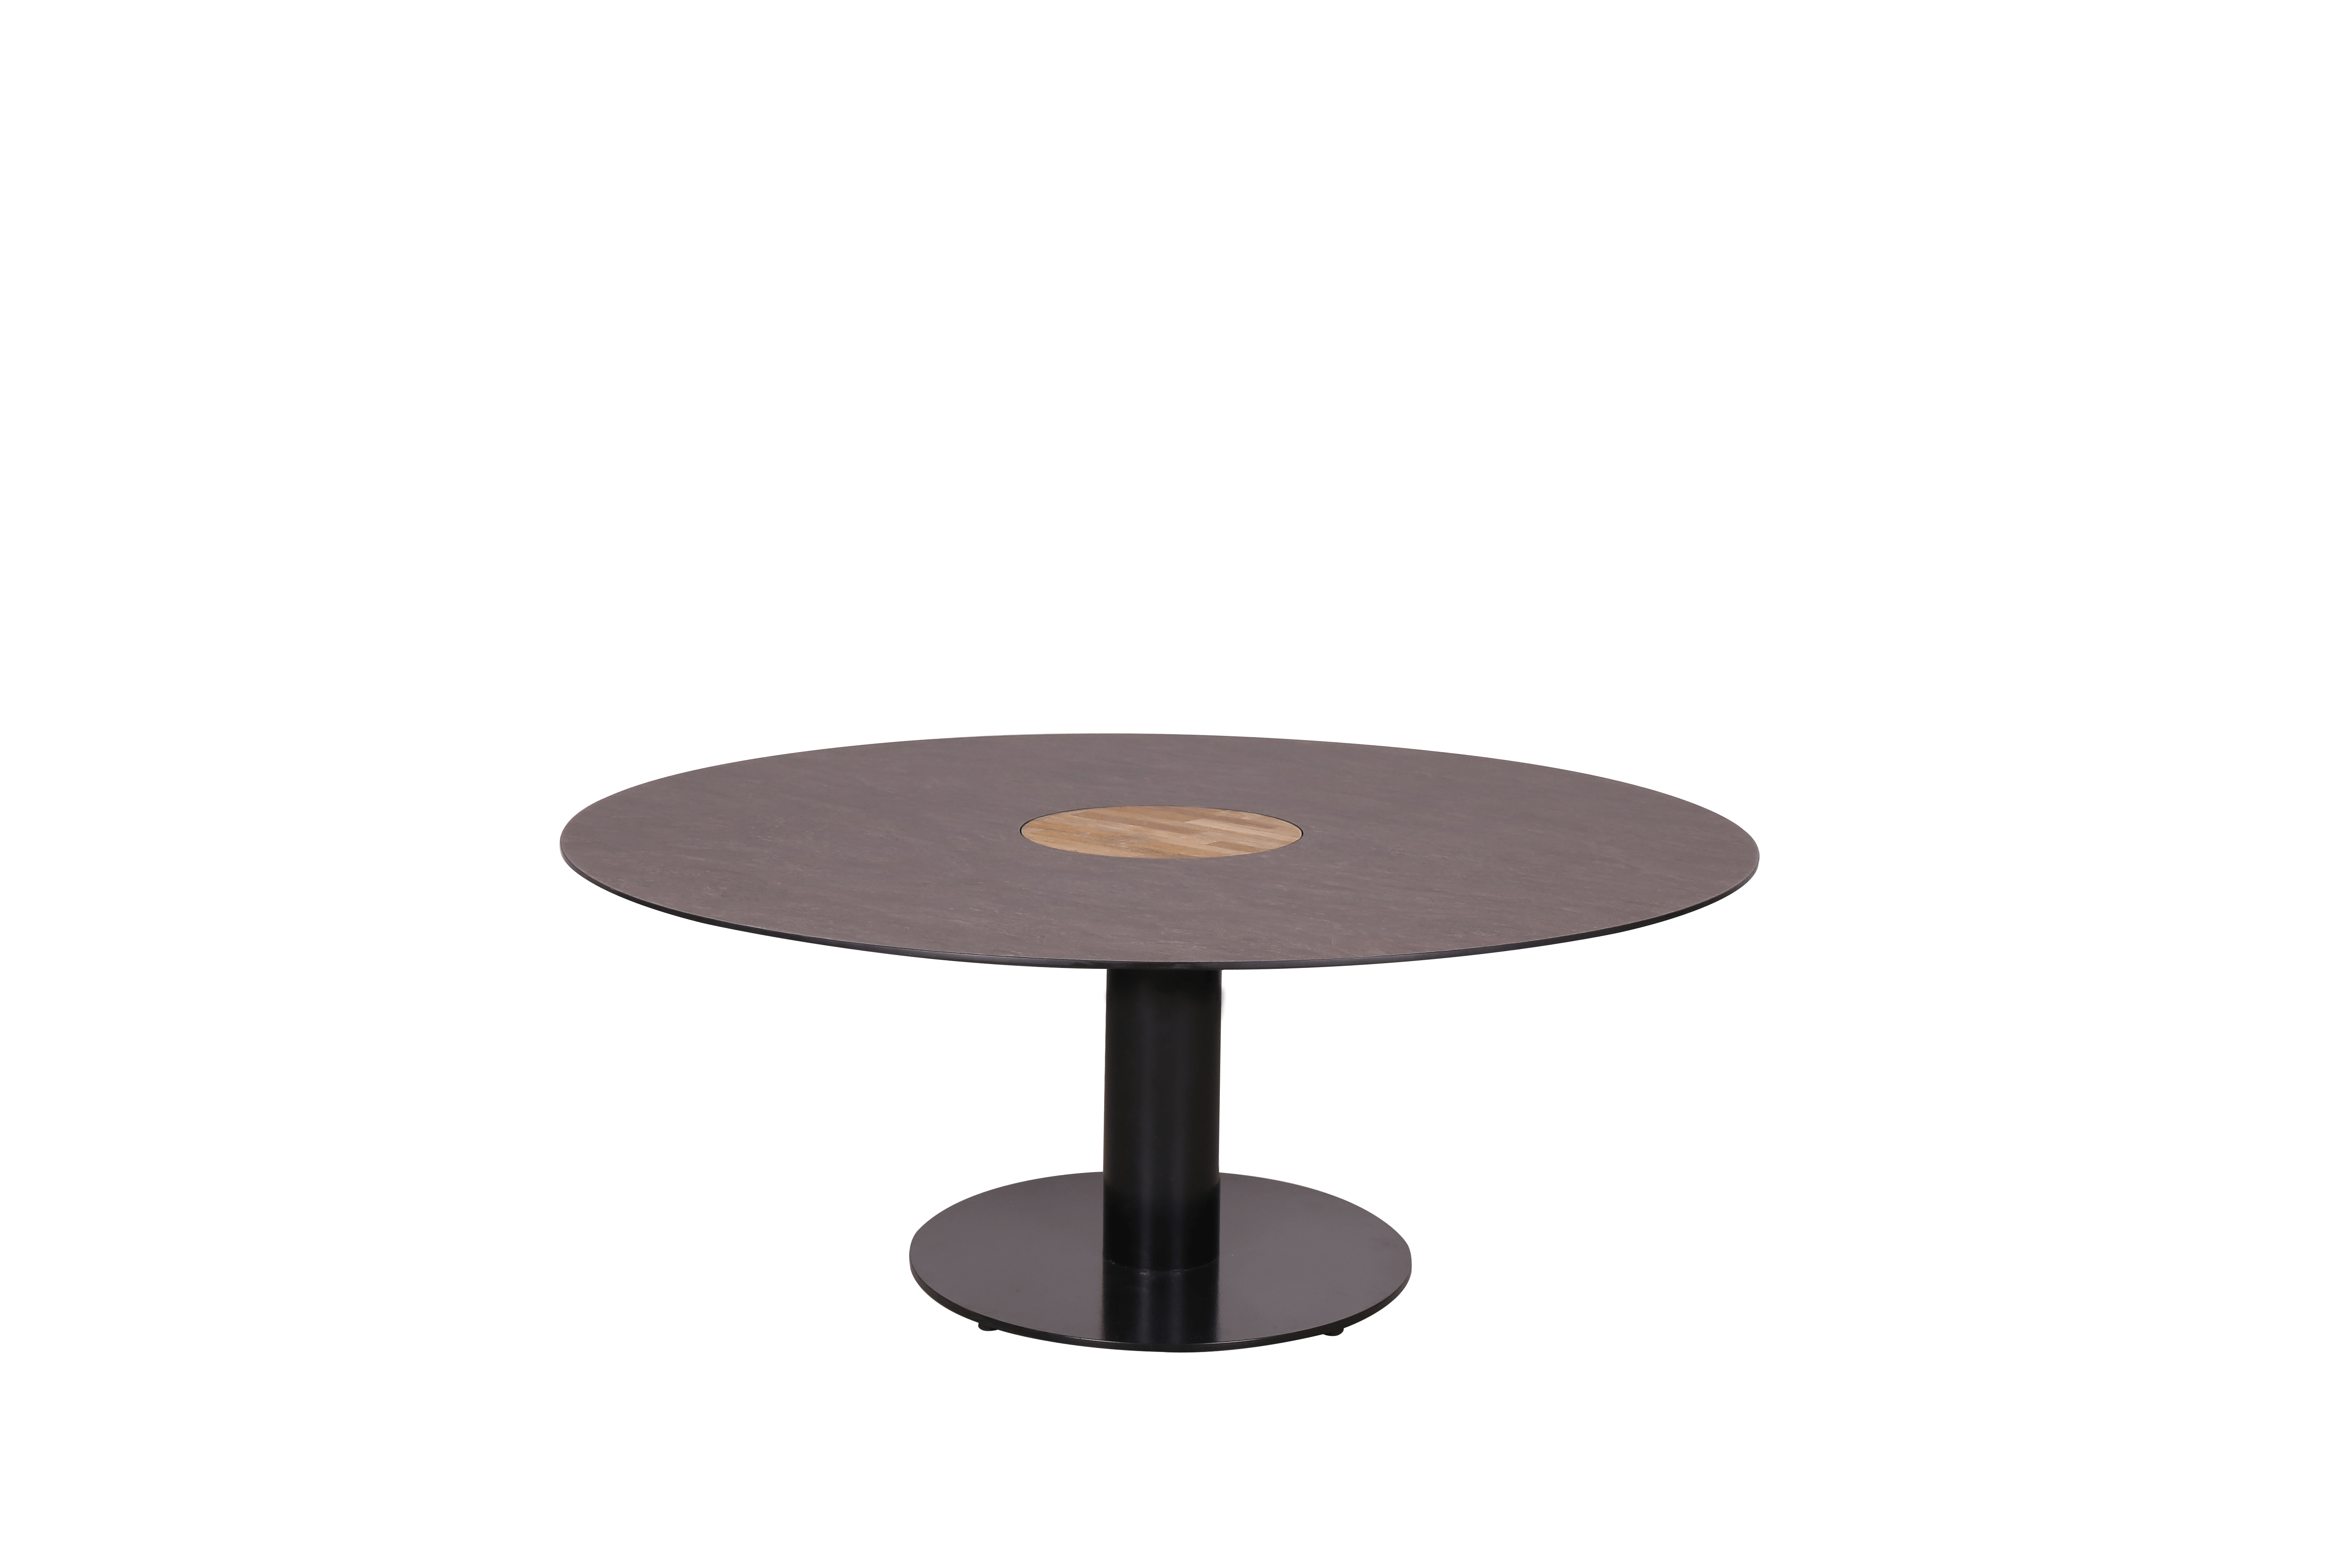 STIZZY PEDESTAL LOW TABLE DIA 50